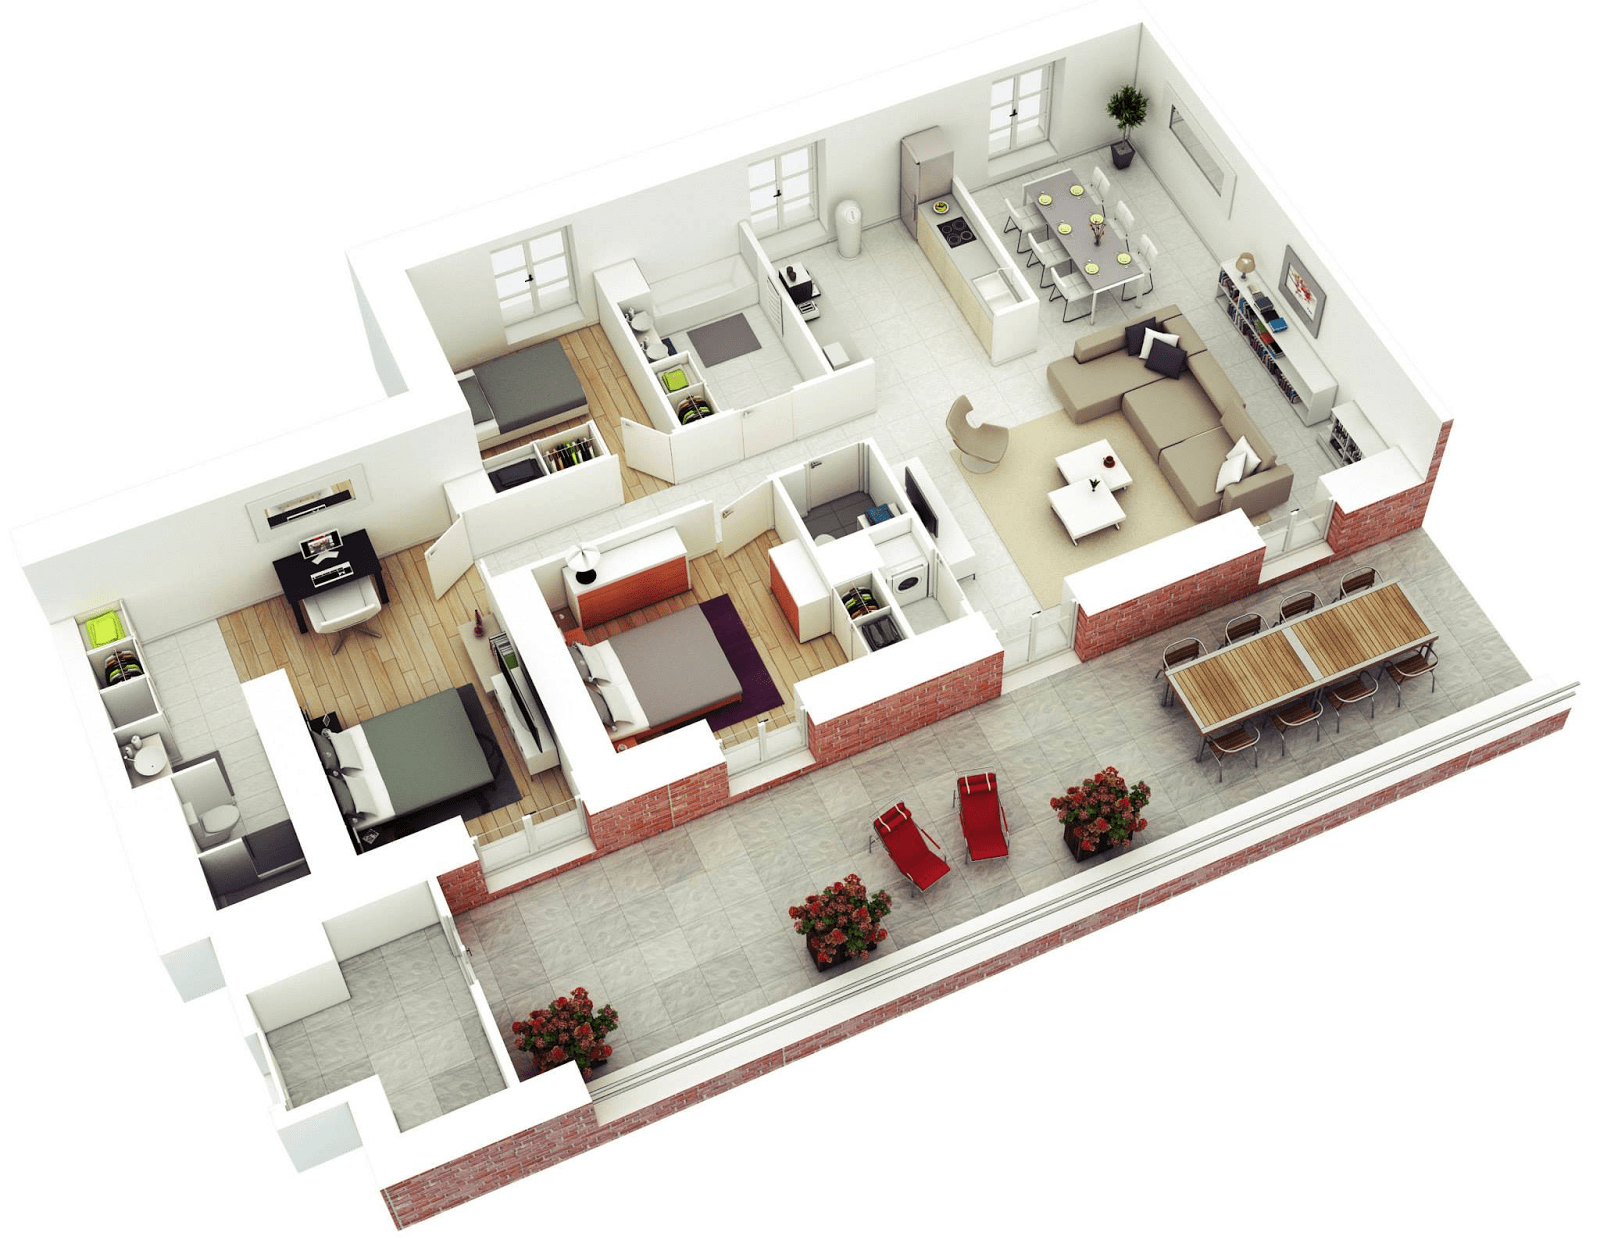 3d Layout House Floor Plans With 3 Bedroom And Backyard Patio (Photo 6 of 11)